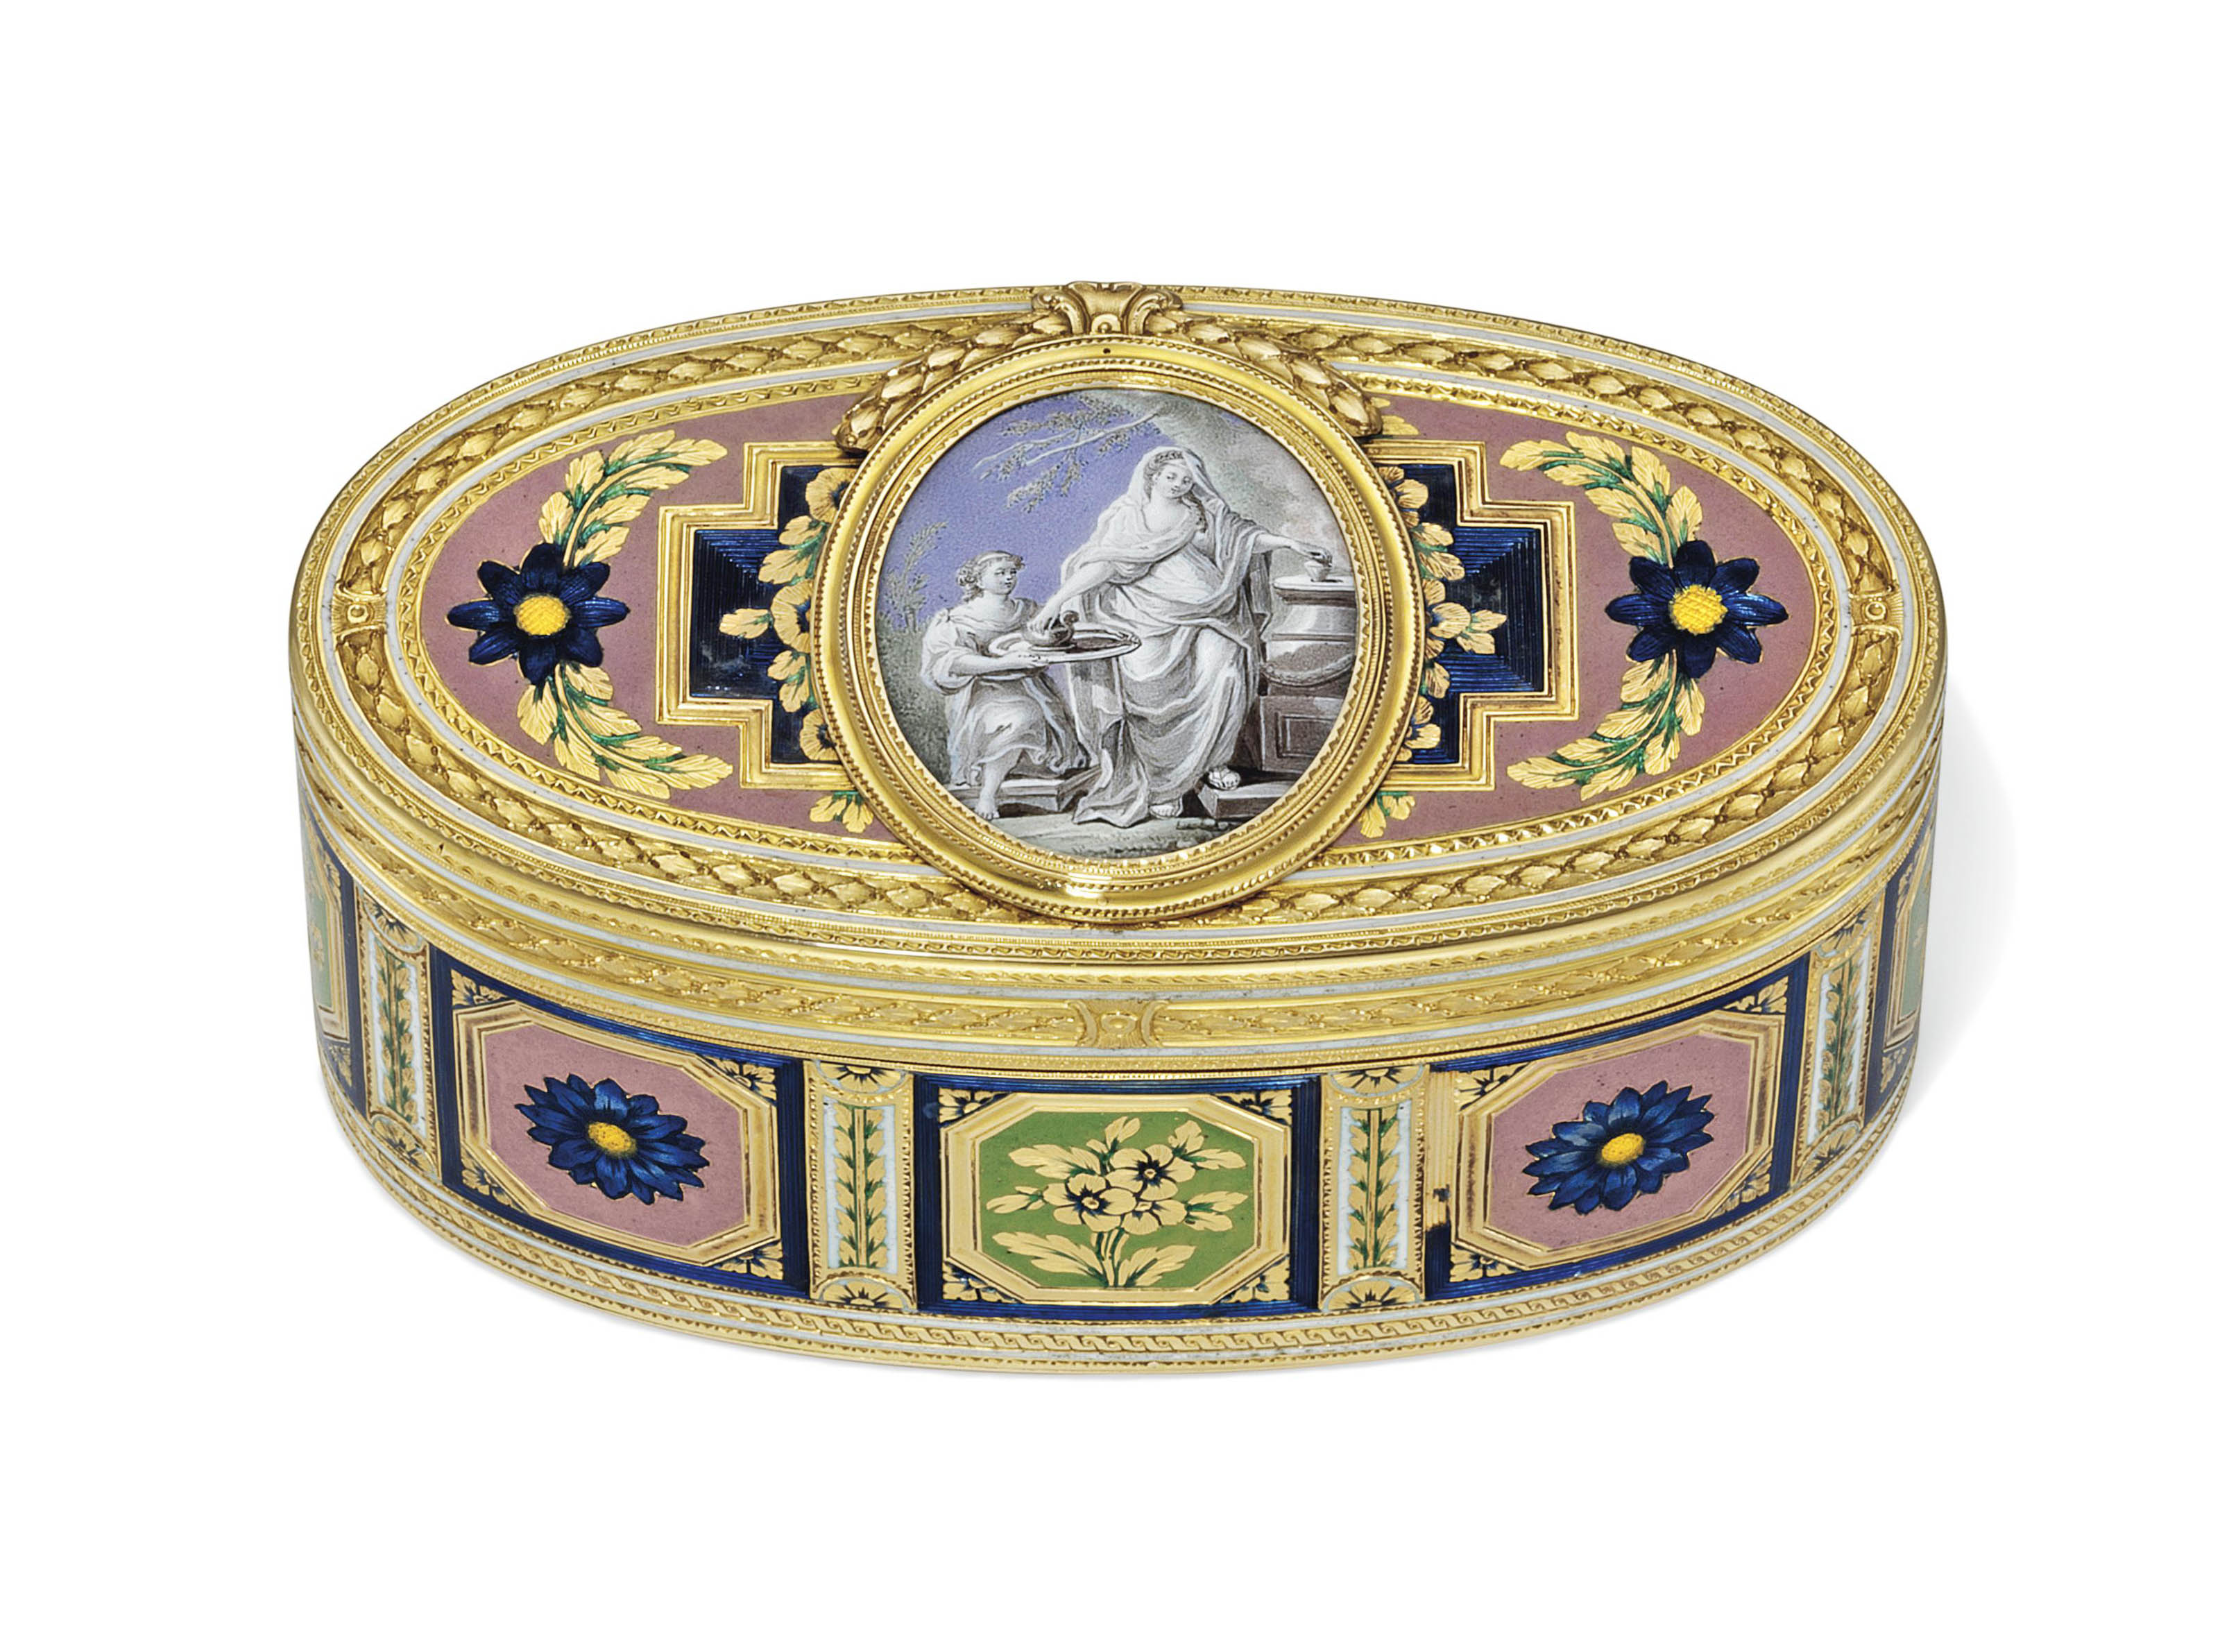 A LOUIS XV ENAMELLED GOLD SNUFF-BOX THE INTERIOR SET WITH A PORTRAIT MINIATURE